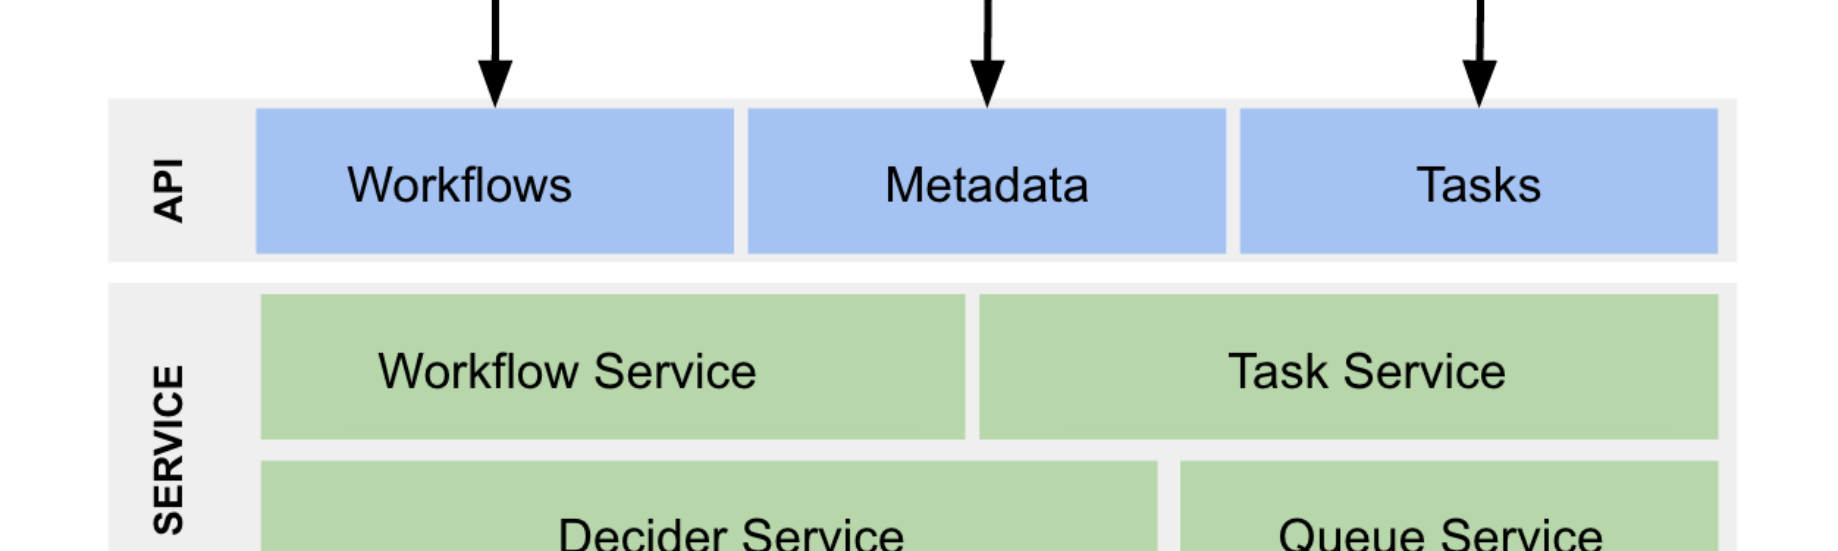 Netflix Conductor: A microservices orchestrator - Netflix TechBlog